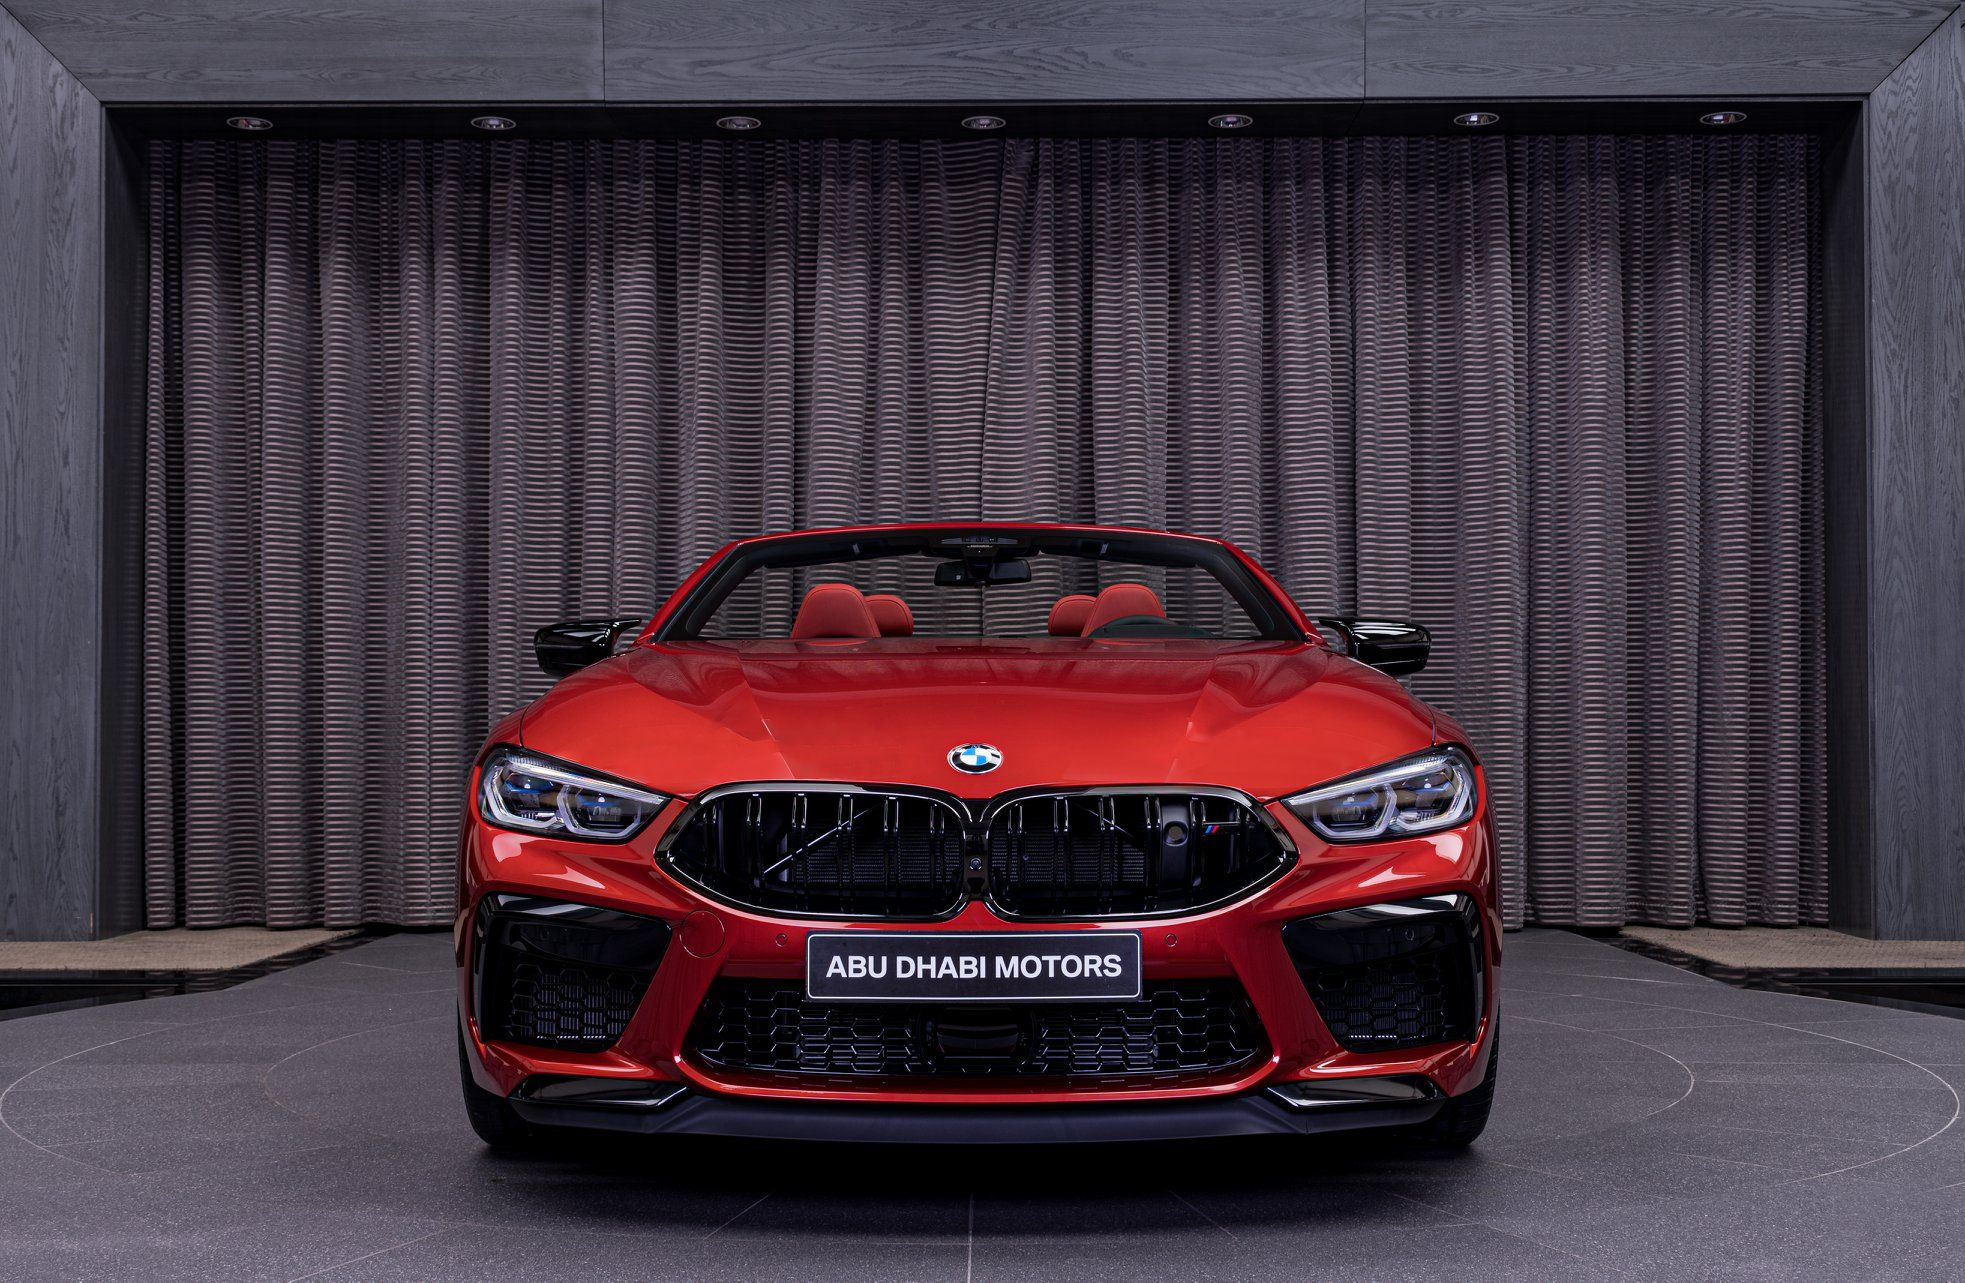 Flamboyant Bmw M8 Competition Convertible In Motegi Red In 2020 Bmw Red Car New Bmw